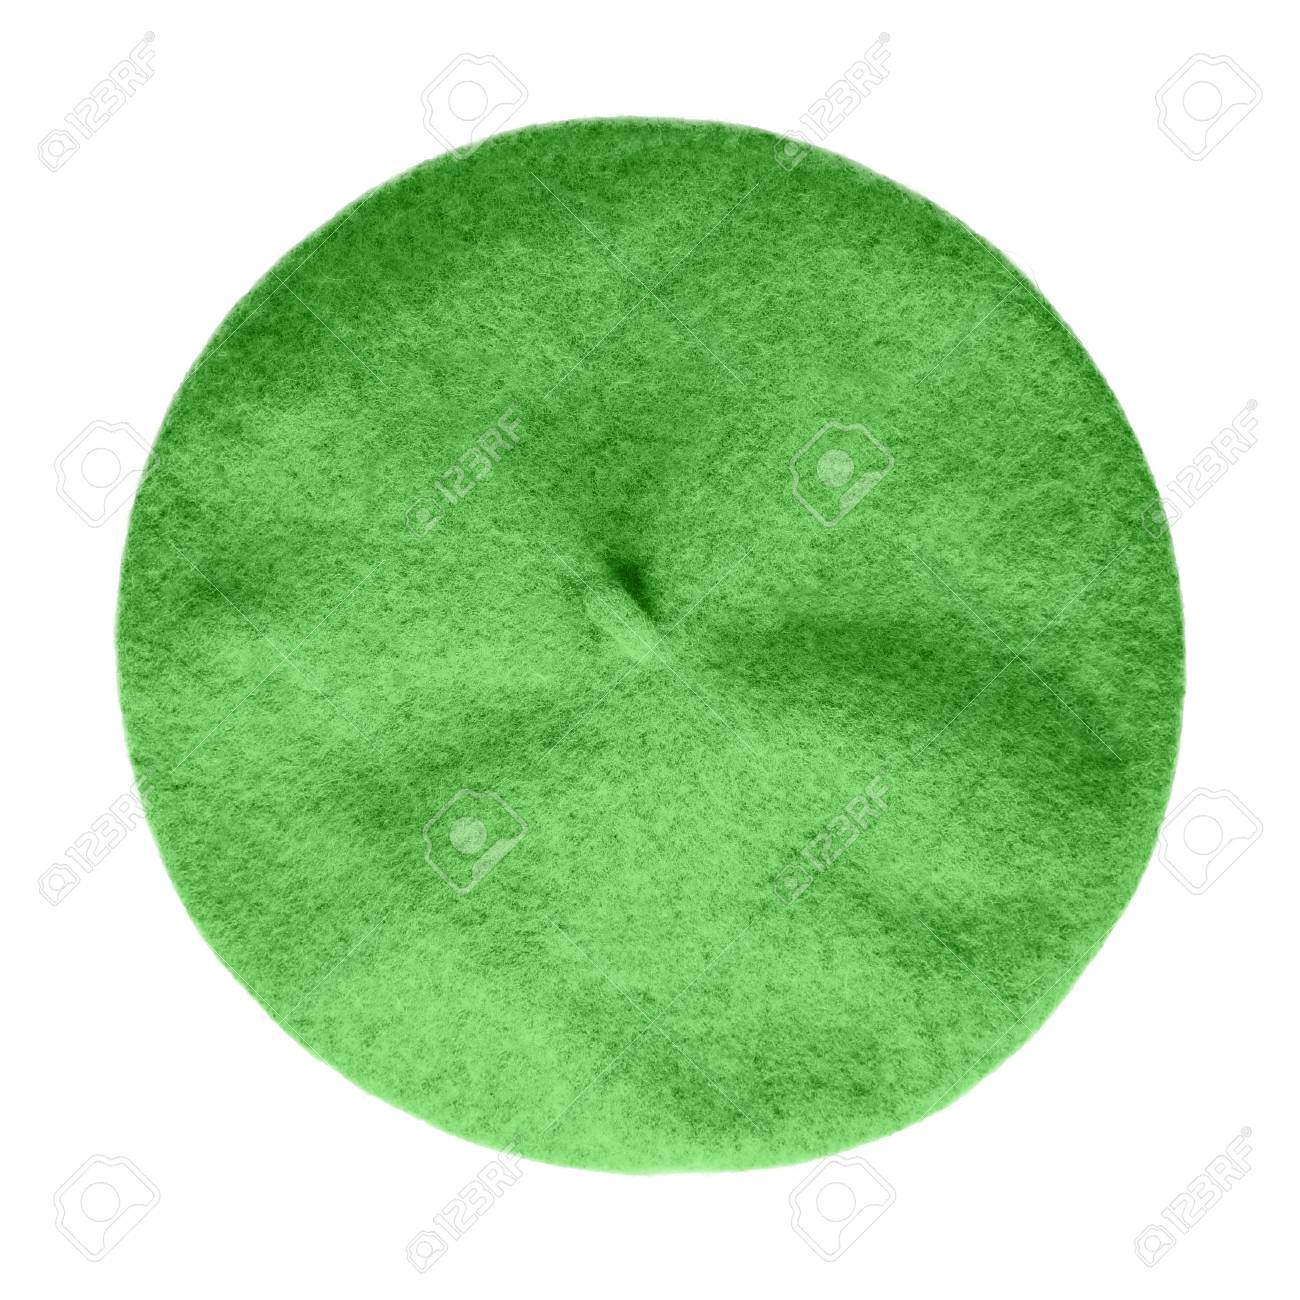 e47b43e5bc4 Chartreuse light green beret French hat top view isolated on white Stock  Photo - 94766076